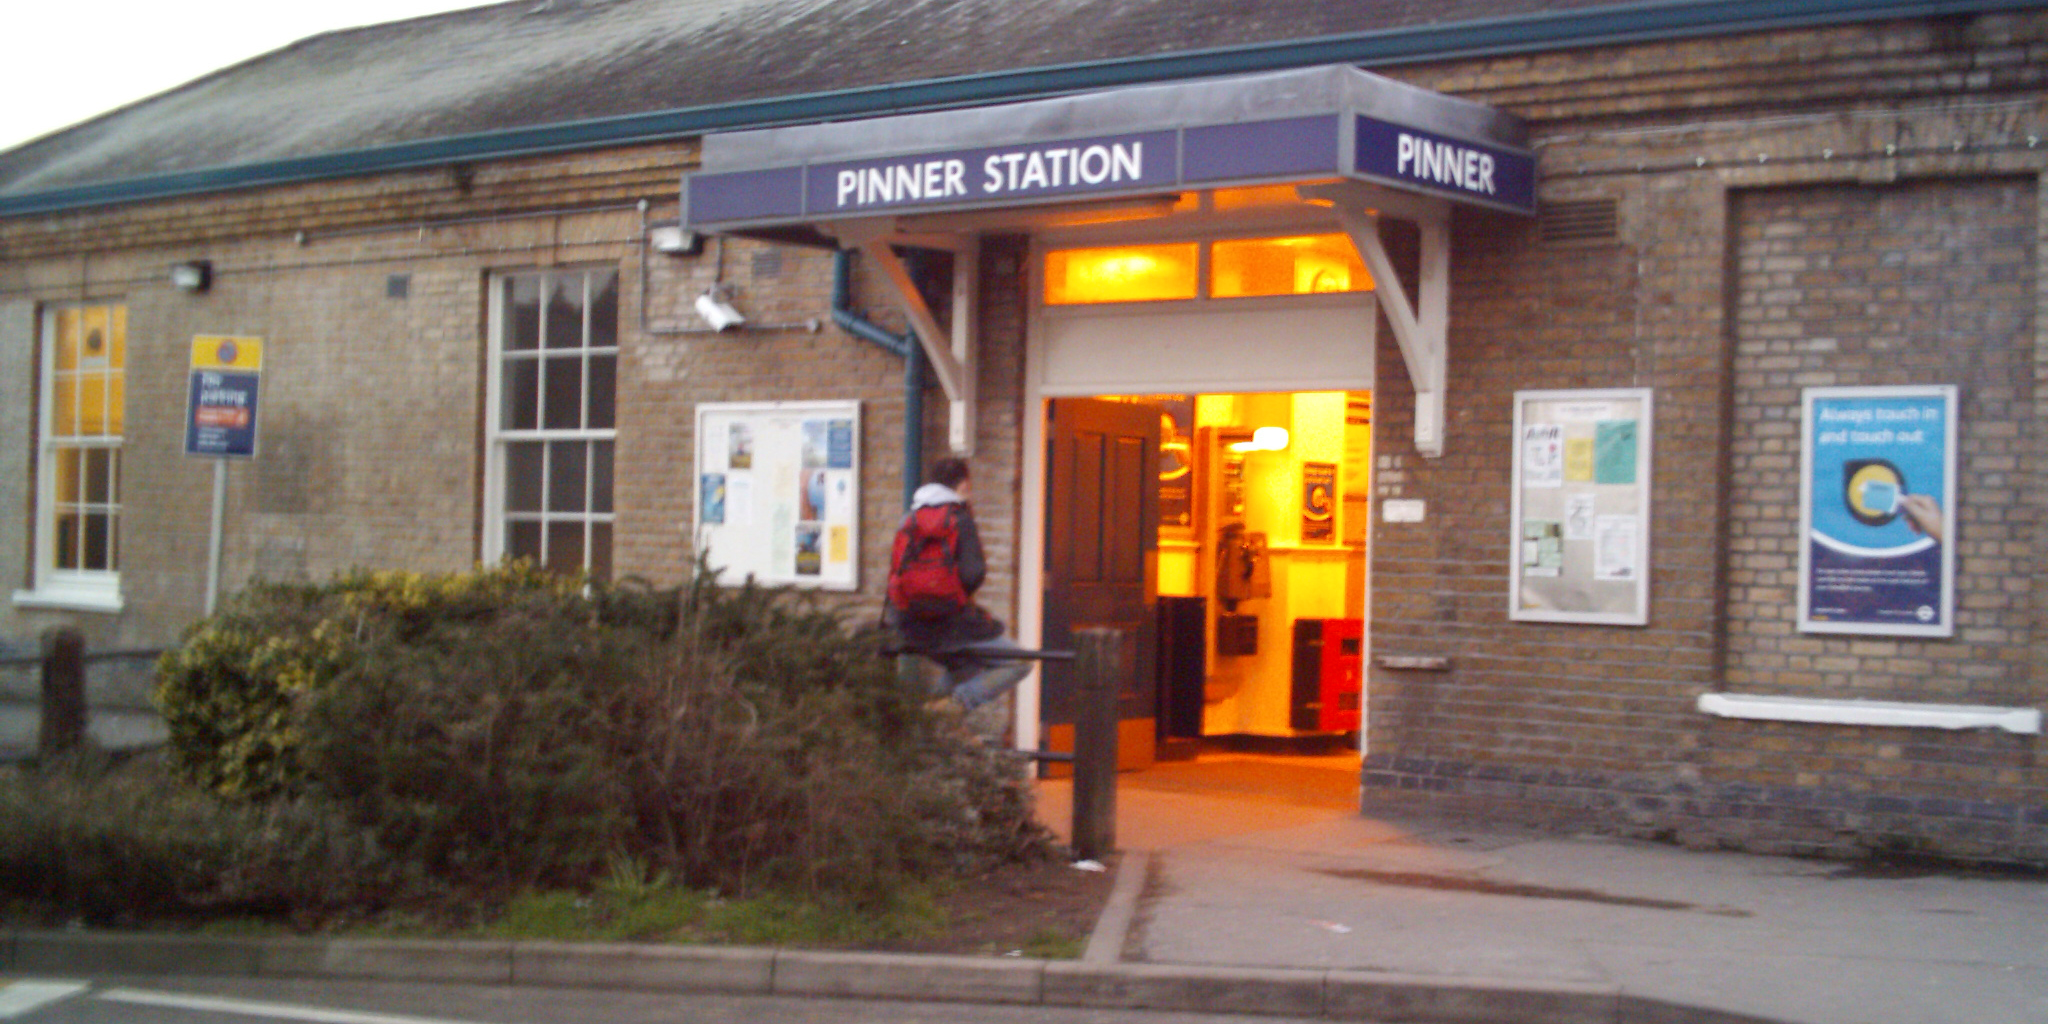 Pinner minicabs, Pinner taxis, Pinner cabs